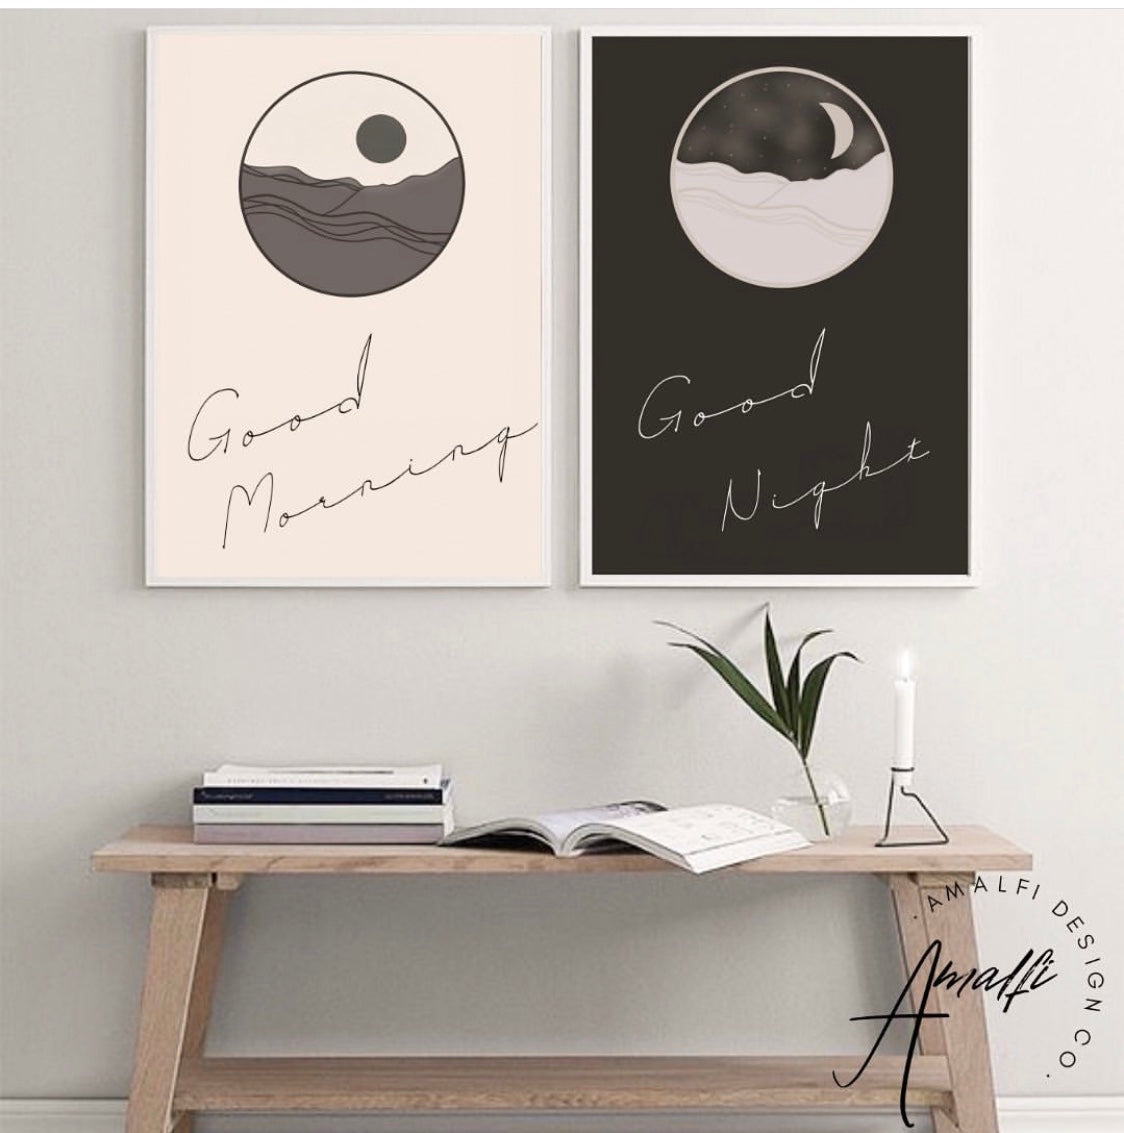 Buy MORNING AND NIGHT MOON SET- INSTANT DOWNLOADfrom Amalfi Boutique